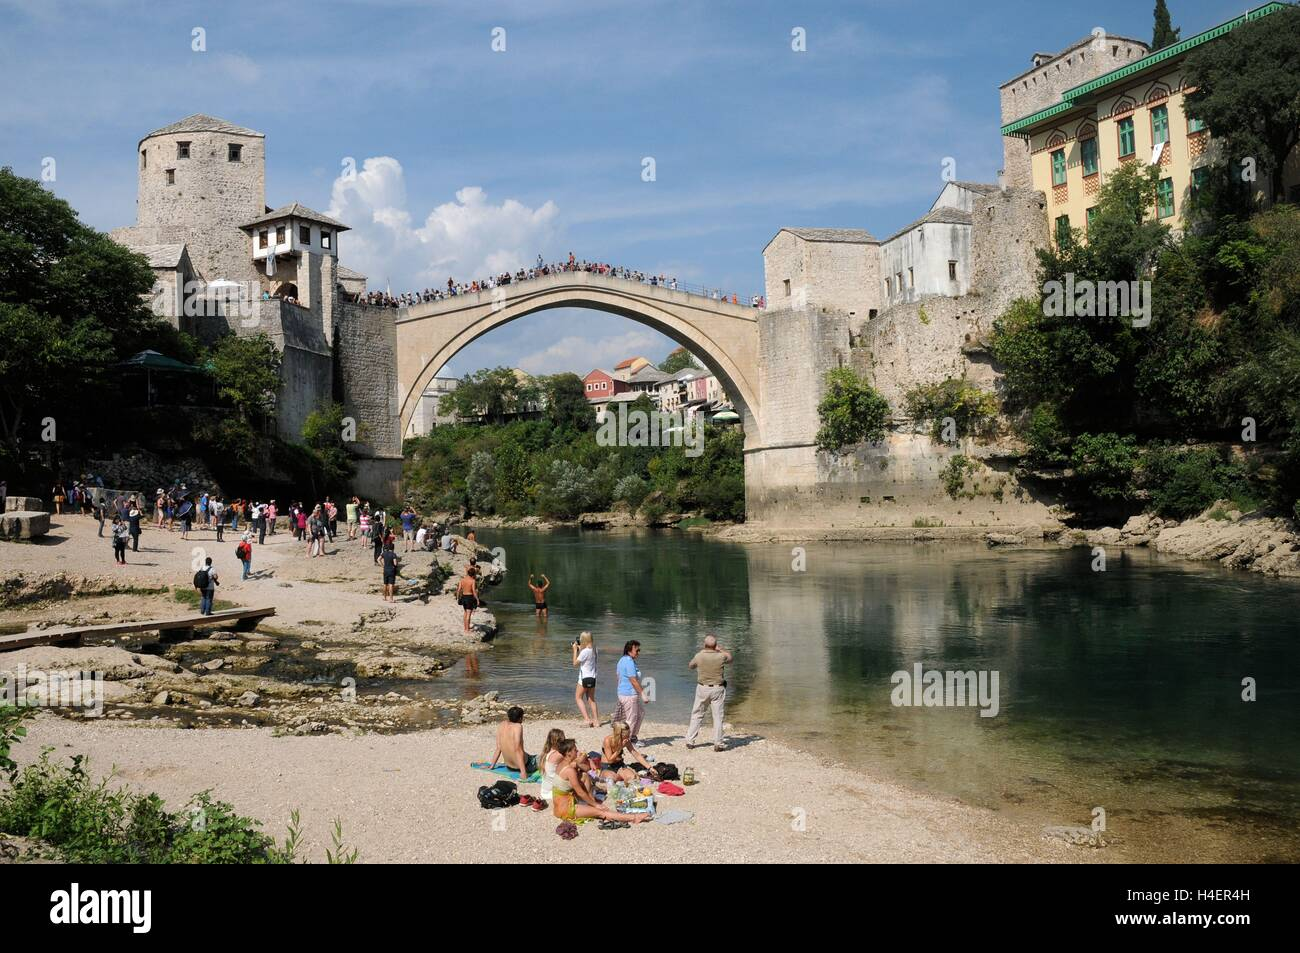 Relaxing by the riverside in front of the Stari Most bridge, Bosnia Herzegovina. Stock Photo